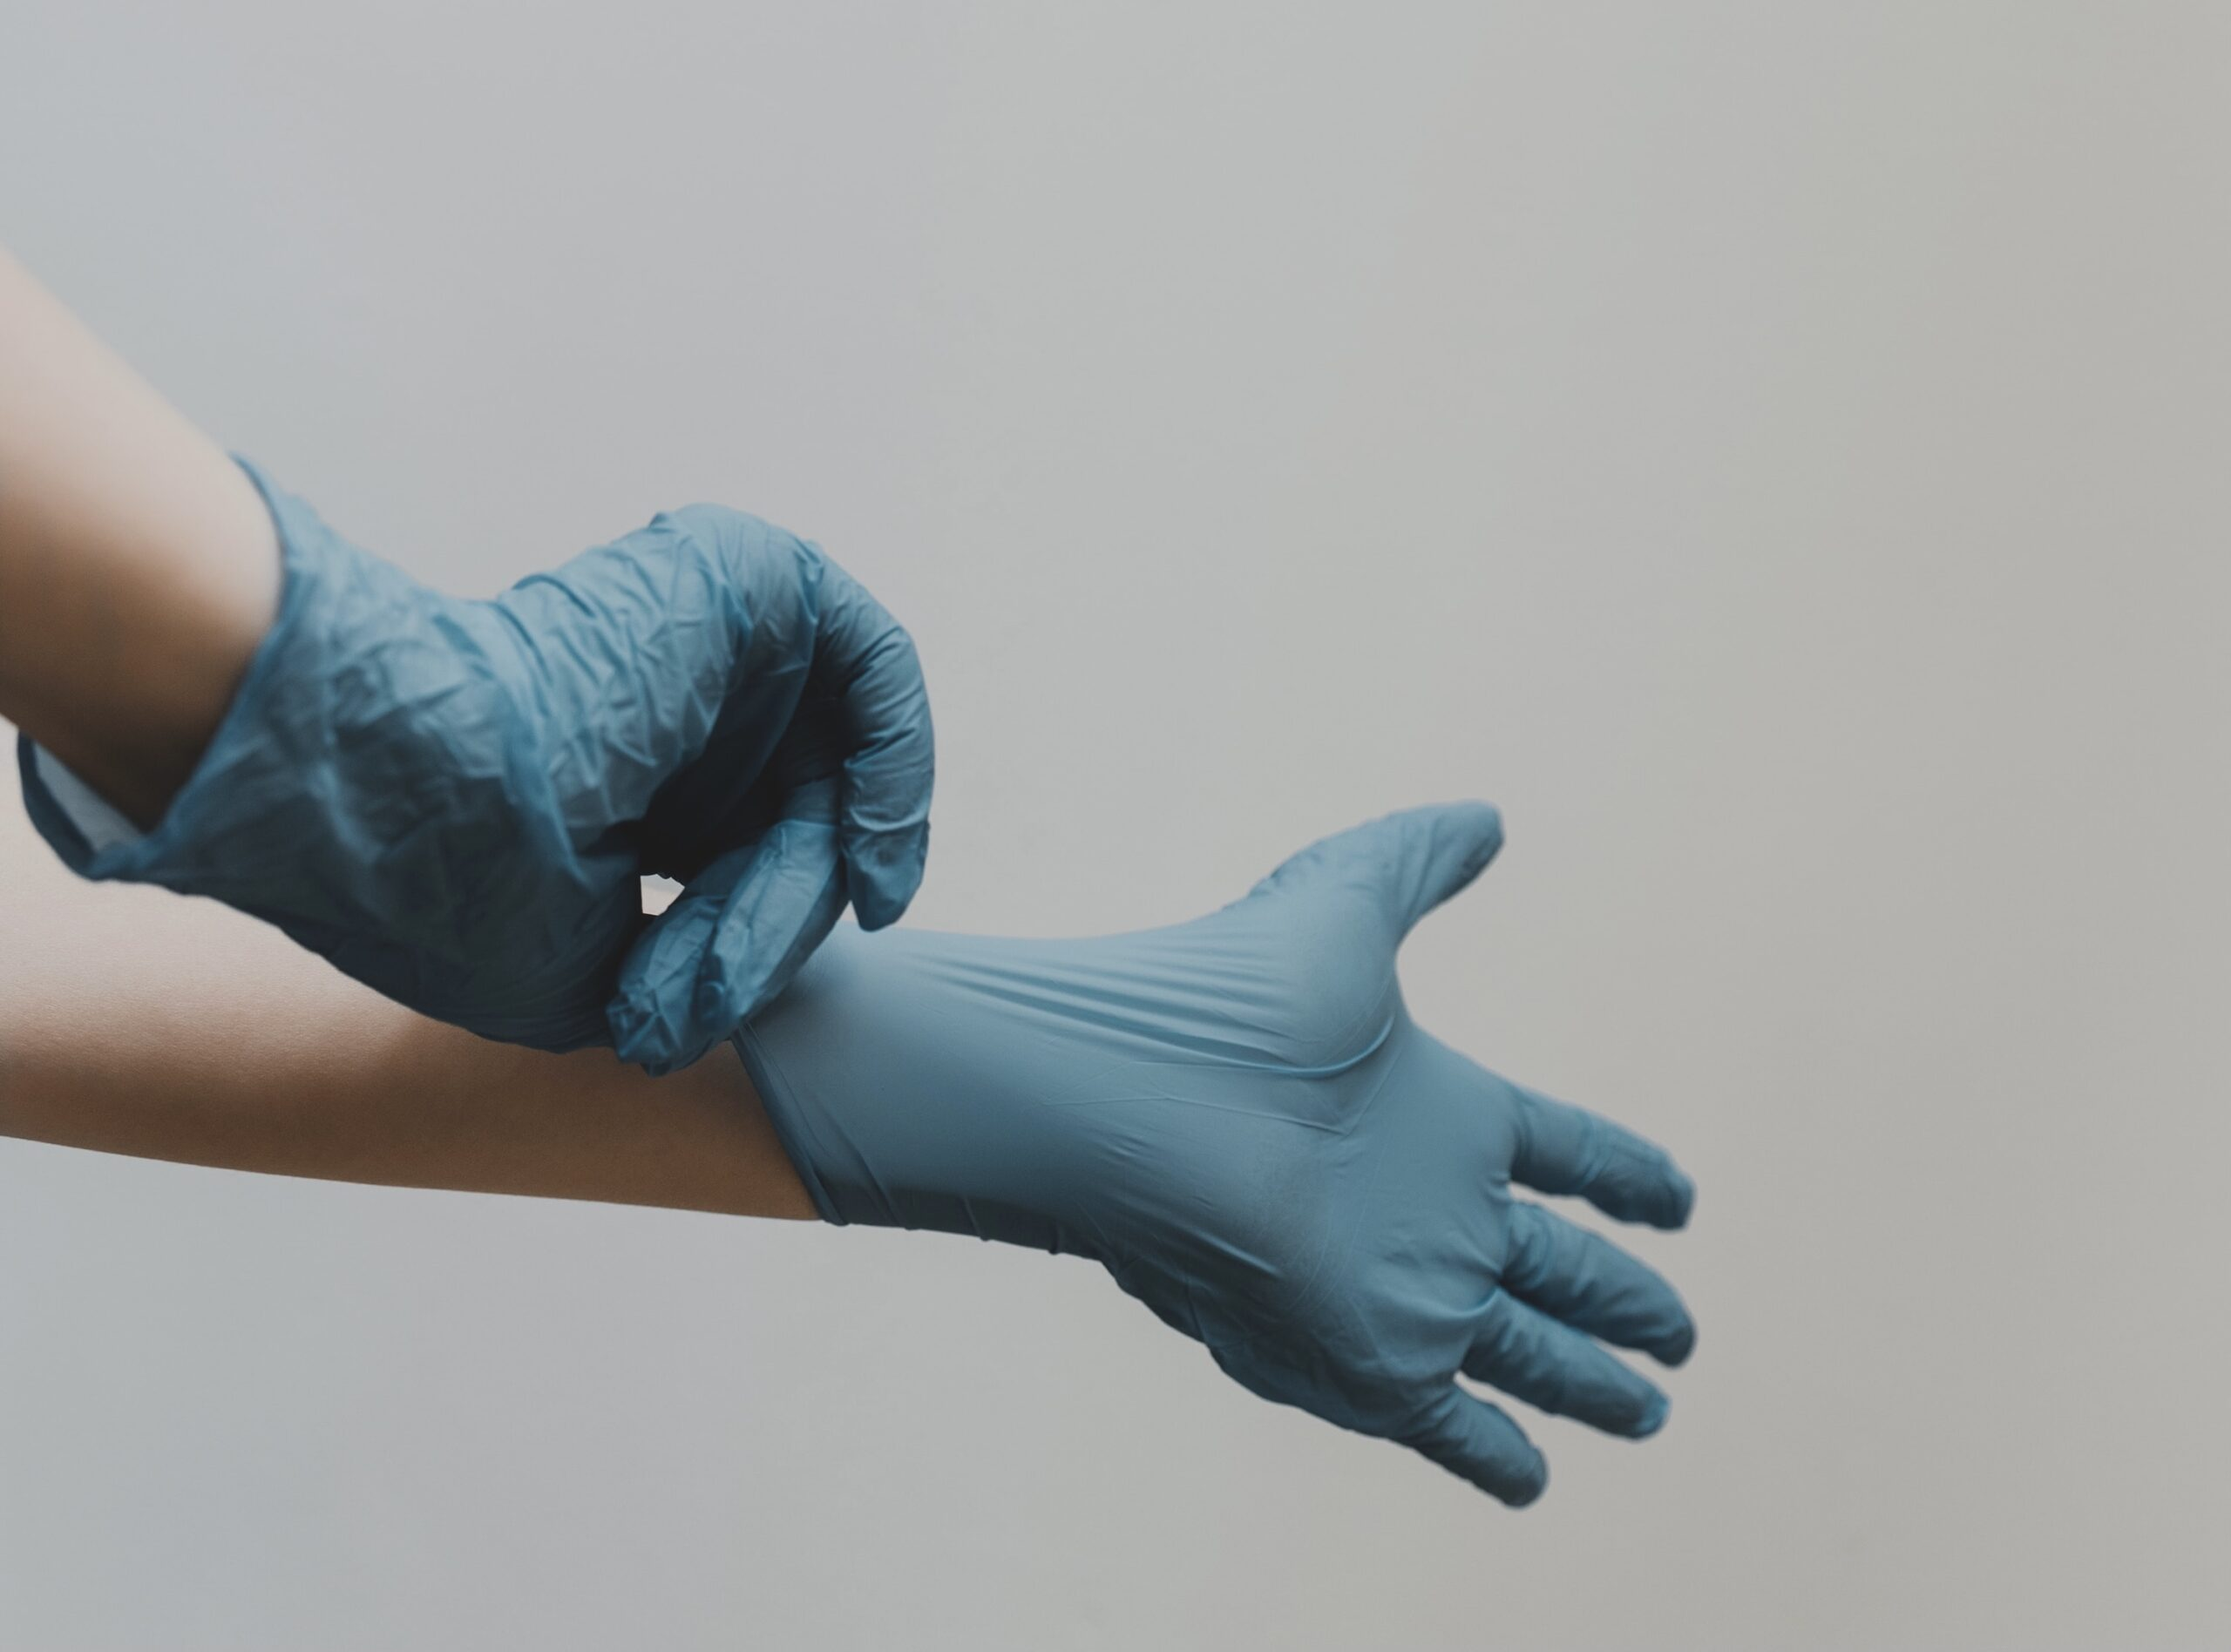 Doctor gloves feature